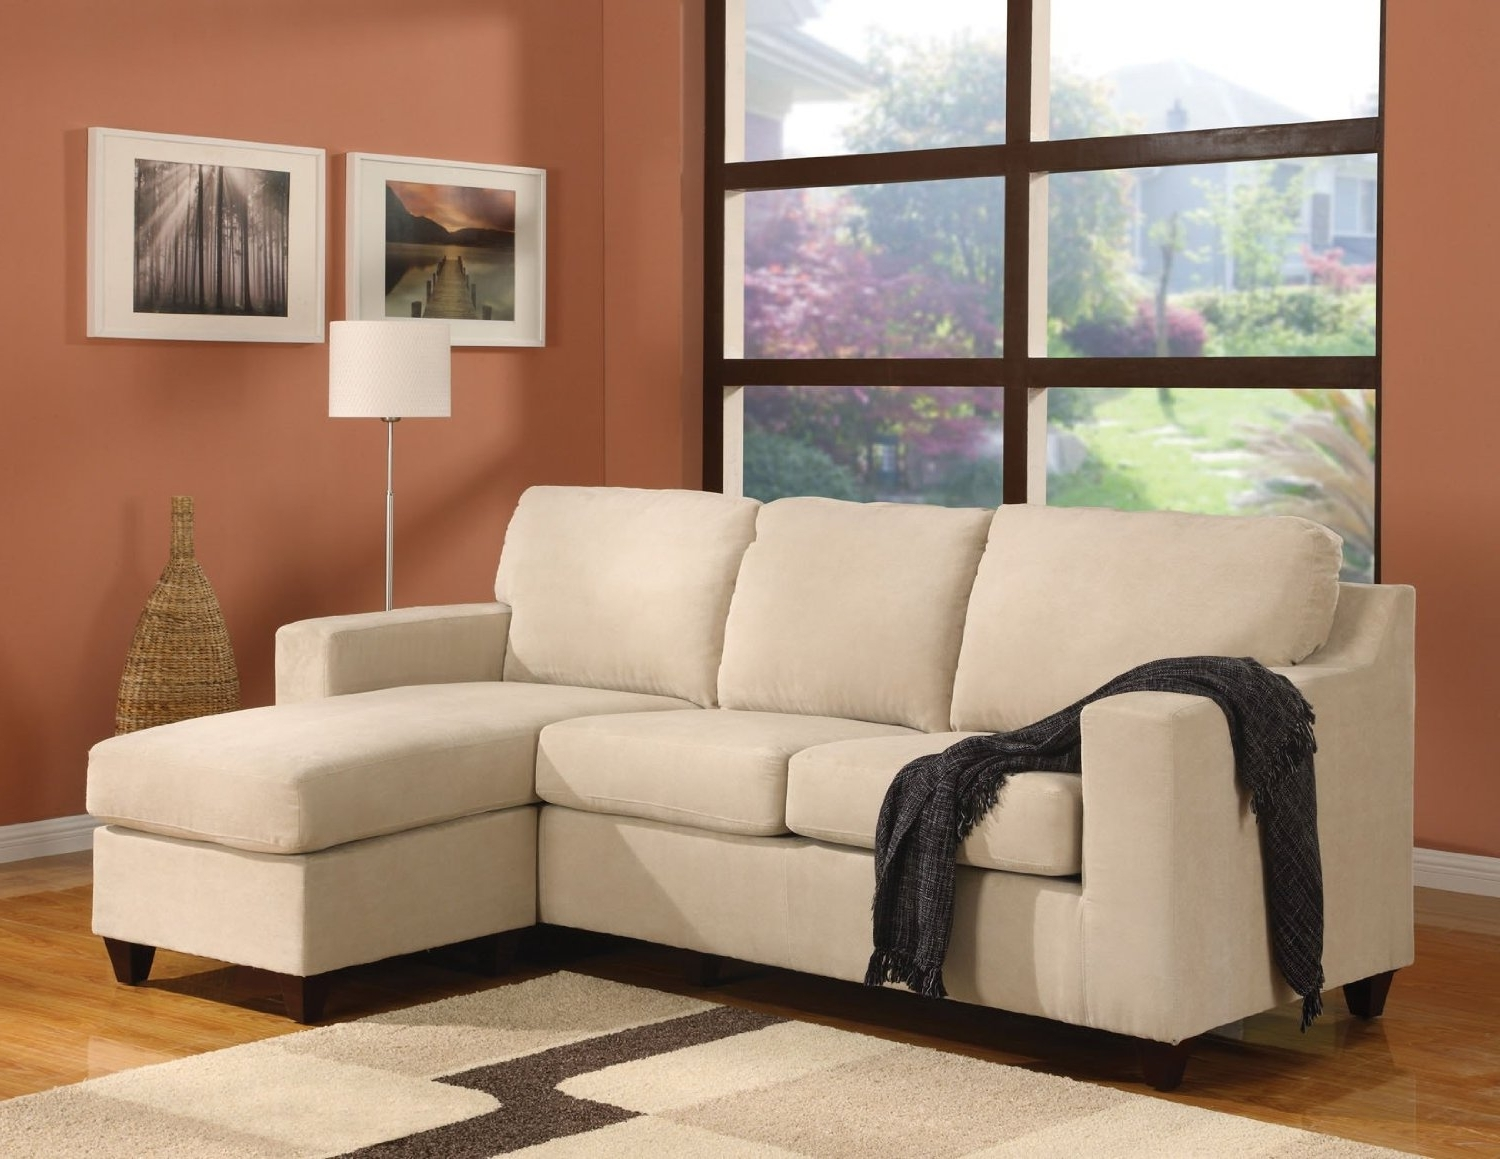 Small Sectional Sofas With Chaise Lounge With Widely Used Awesome Small Sectional Sofa With Chaise Lounge Chairs (View 11 of 15)